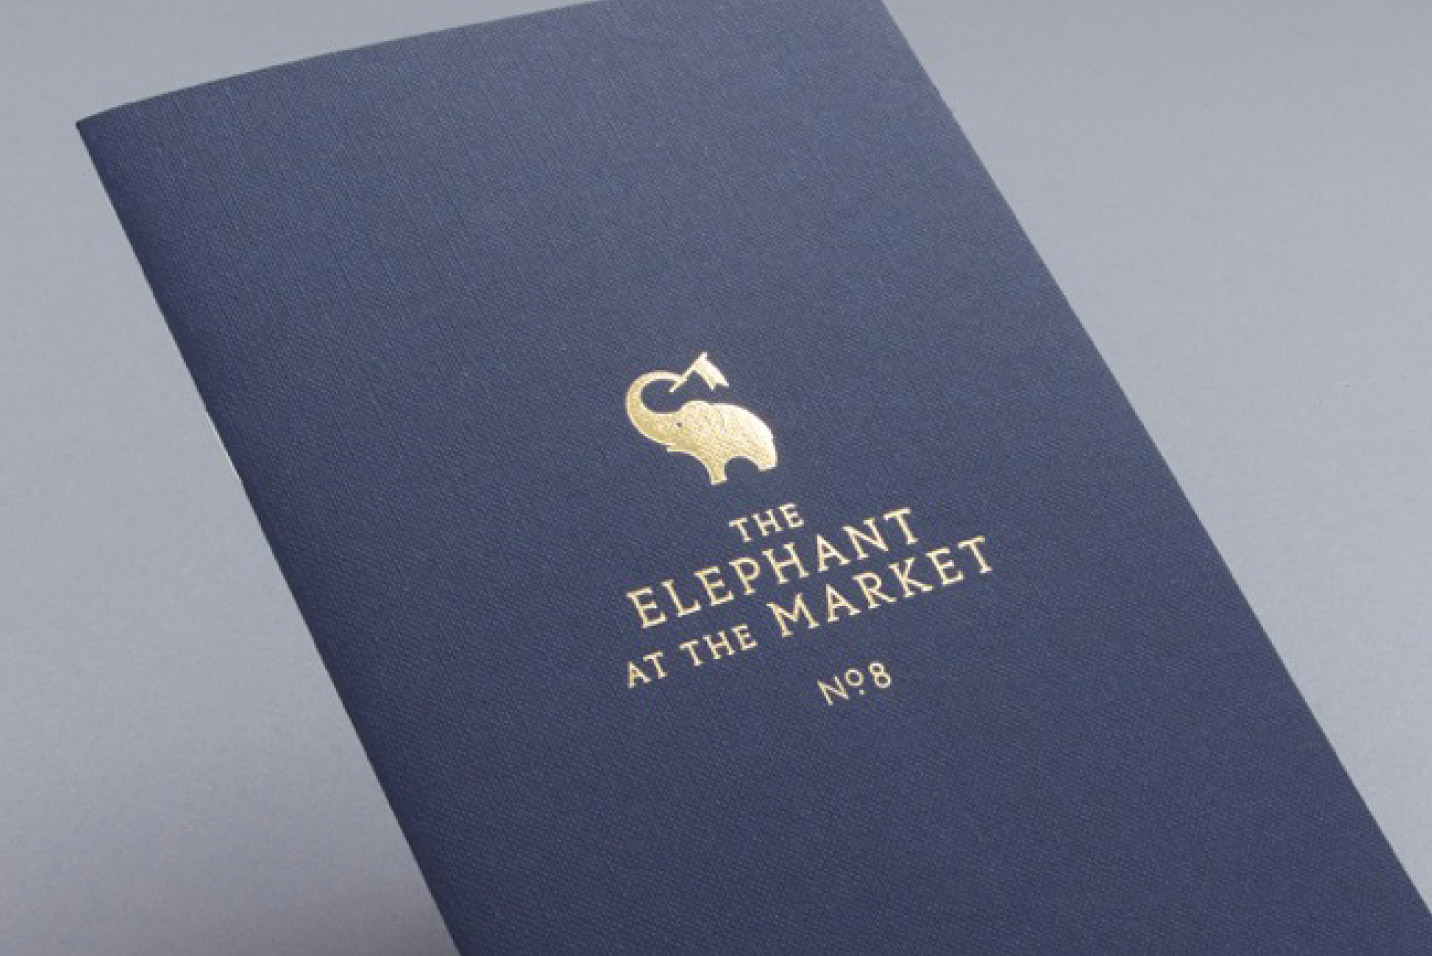 elephant-at-the-market-3